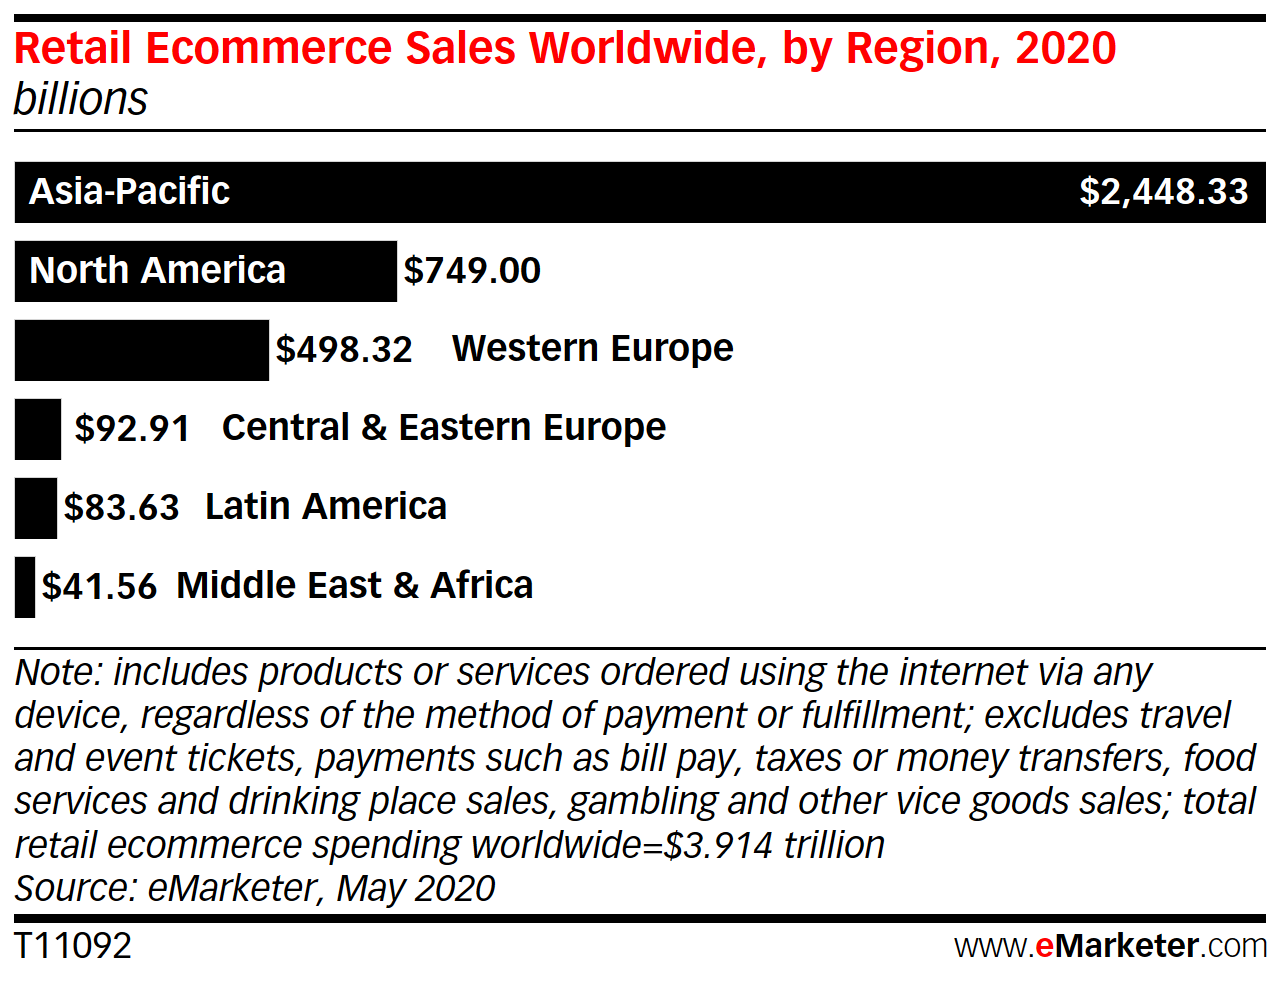 Retail eCommerce Sales Worldwide by Region 2020